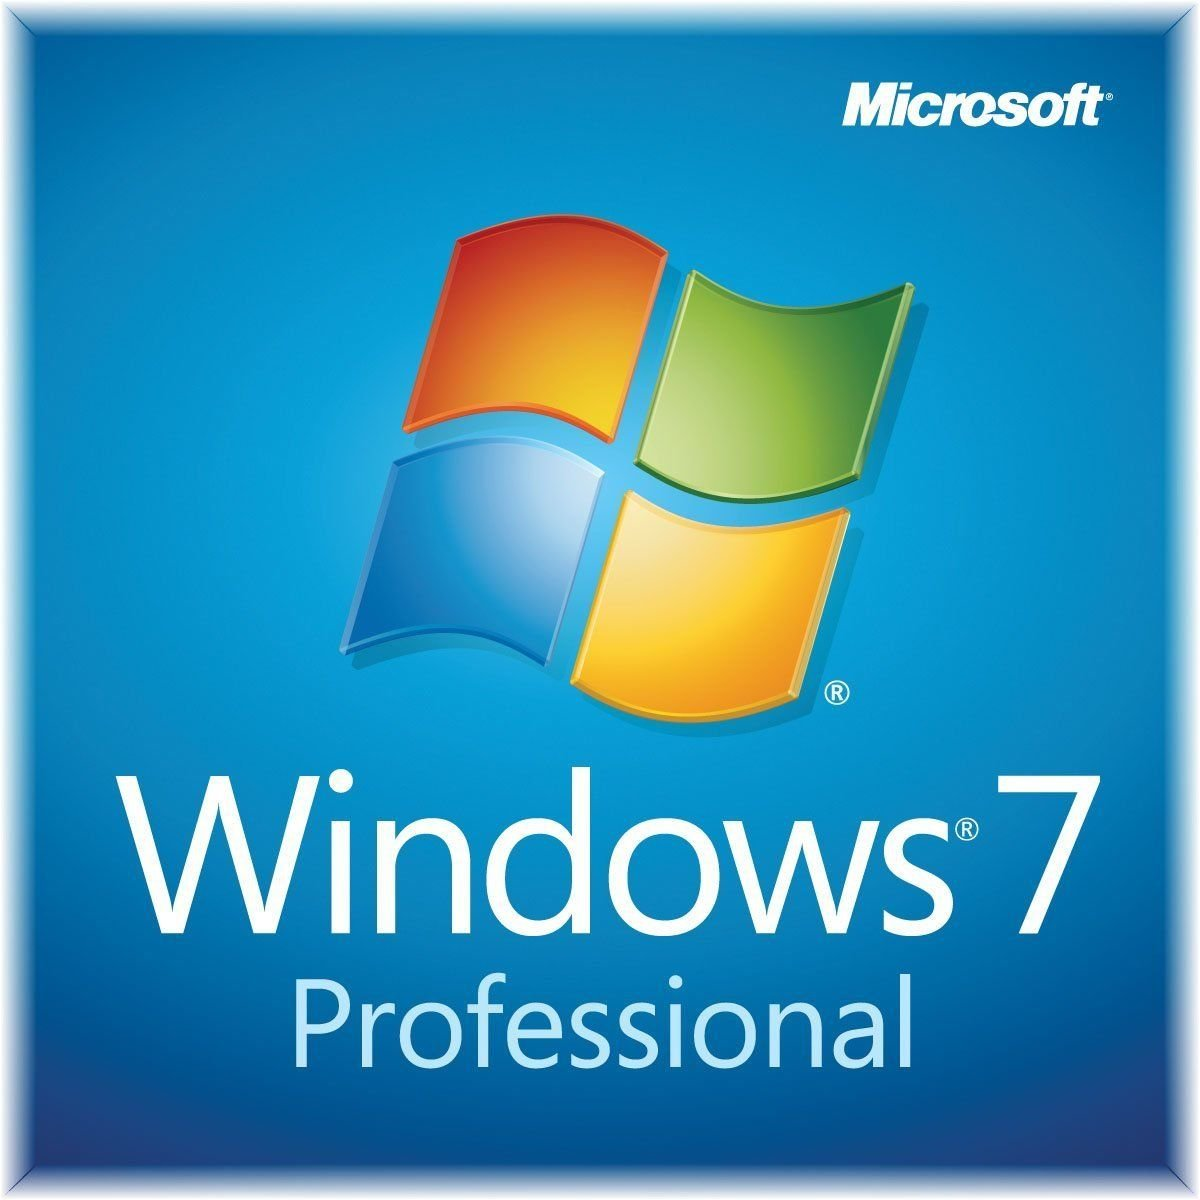 Microsoft Windows 7 Professional 32/64 bit sticker key Original: Amazon.es: Electrónica